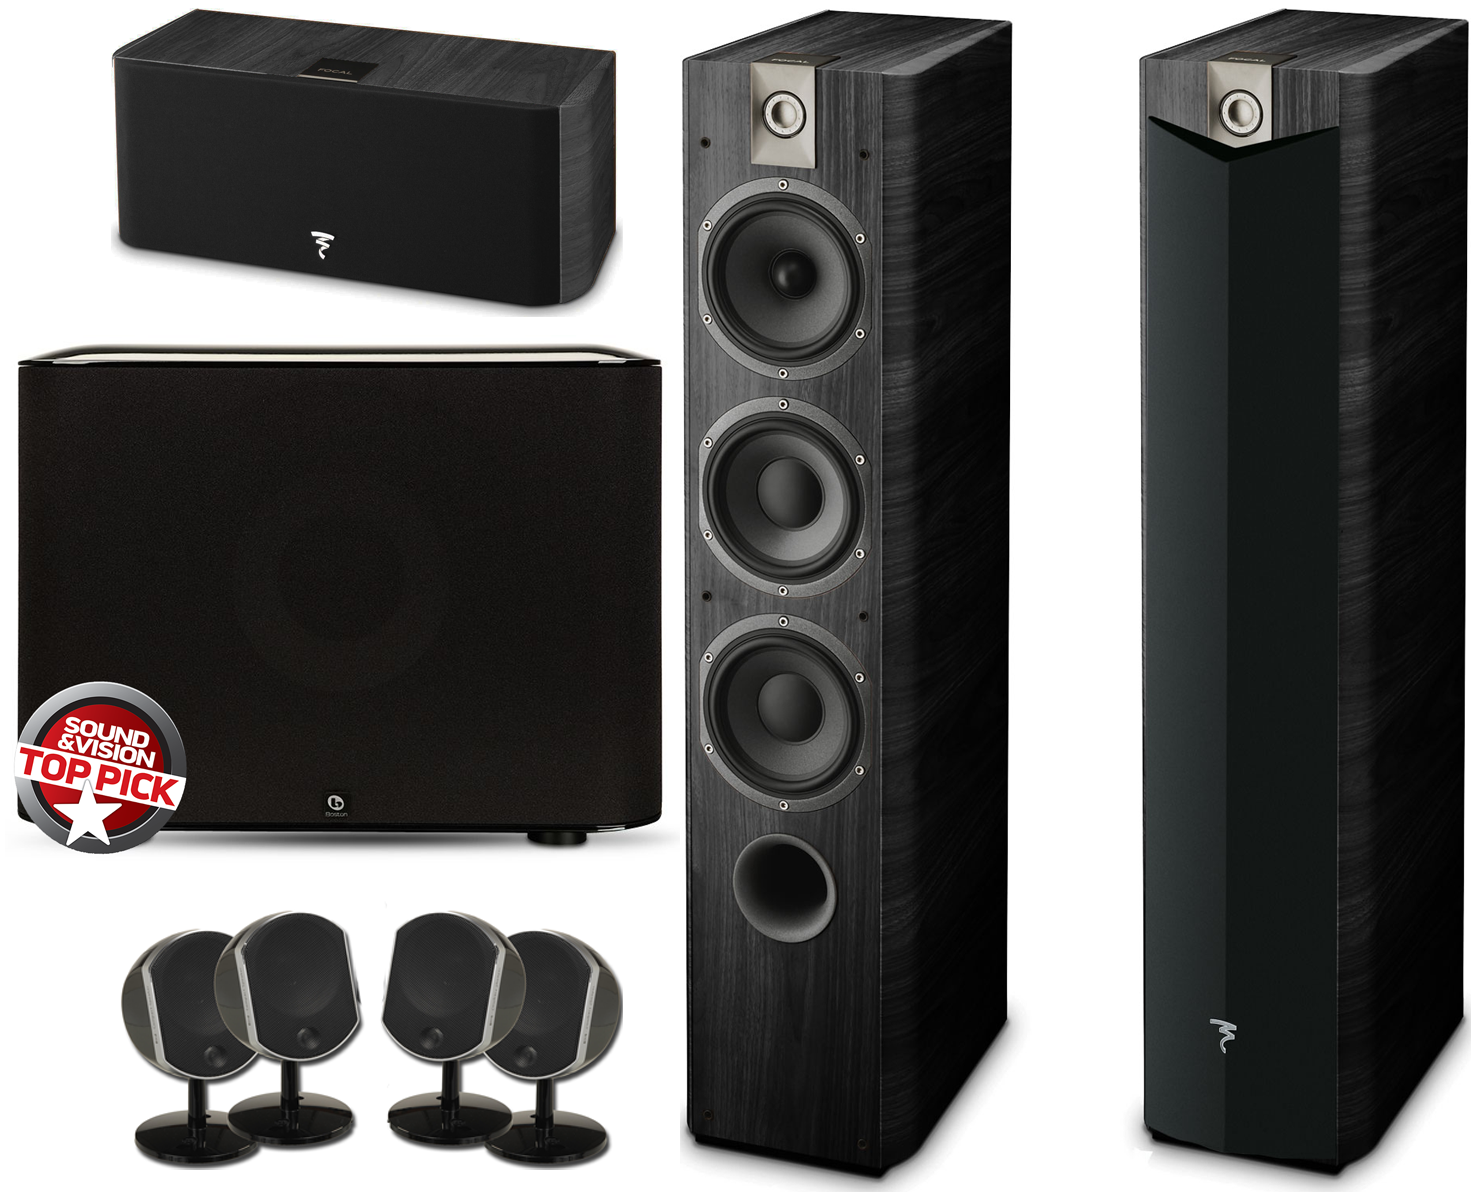 focal complete home theater speaker package w boston acoustics subwoofer accessories4less. Black Bedroom Furniture Sets. Home Design Ideas